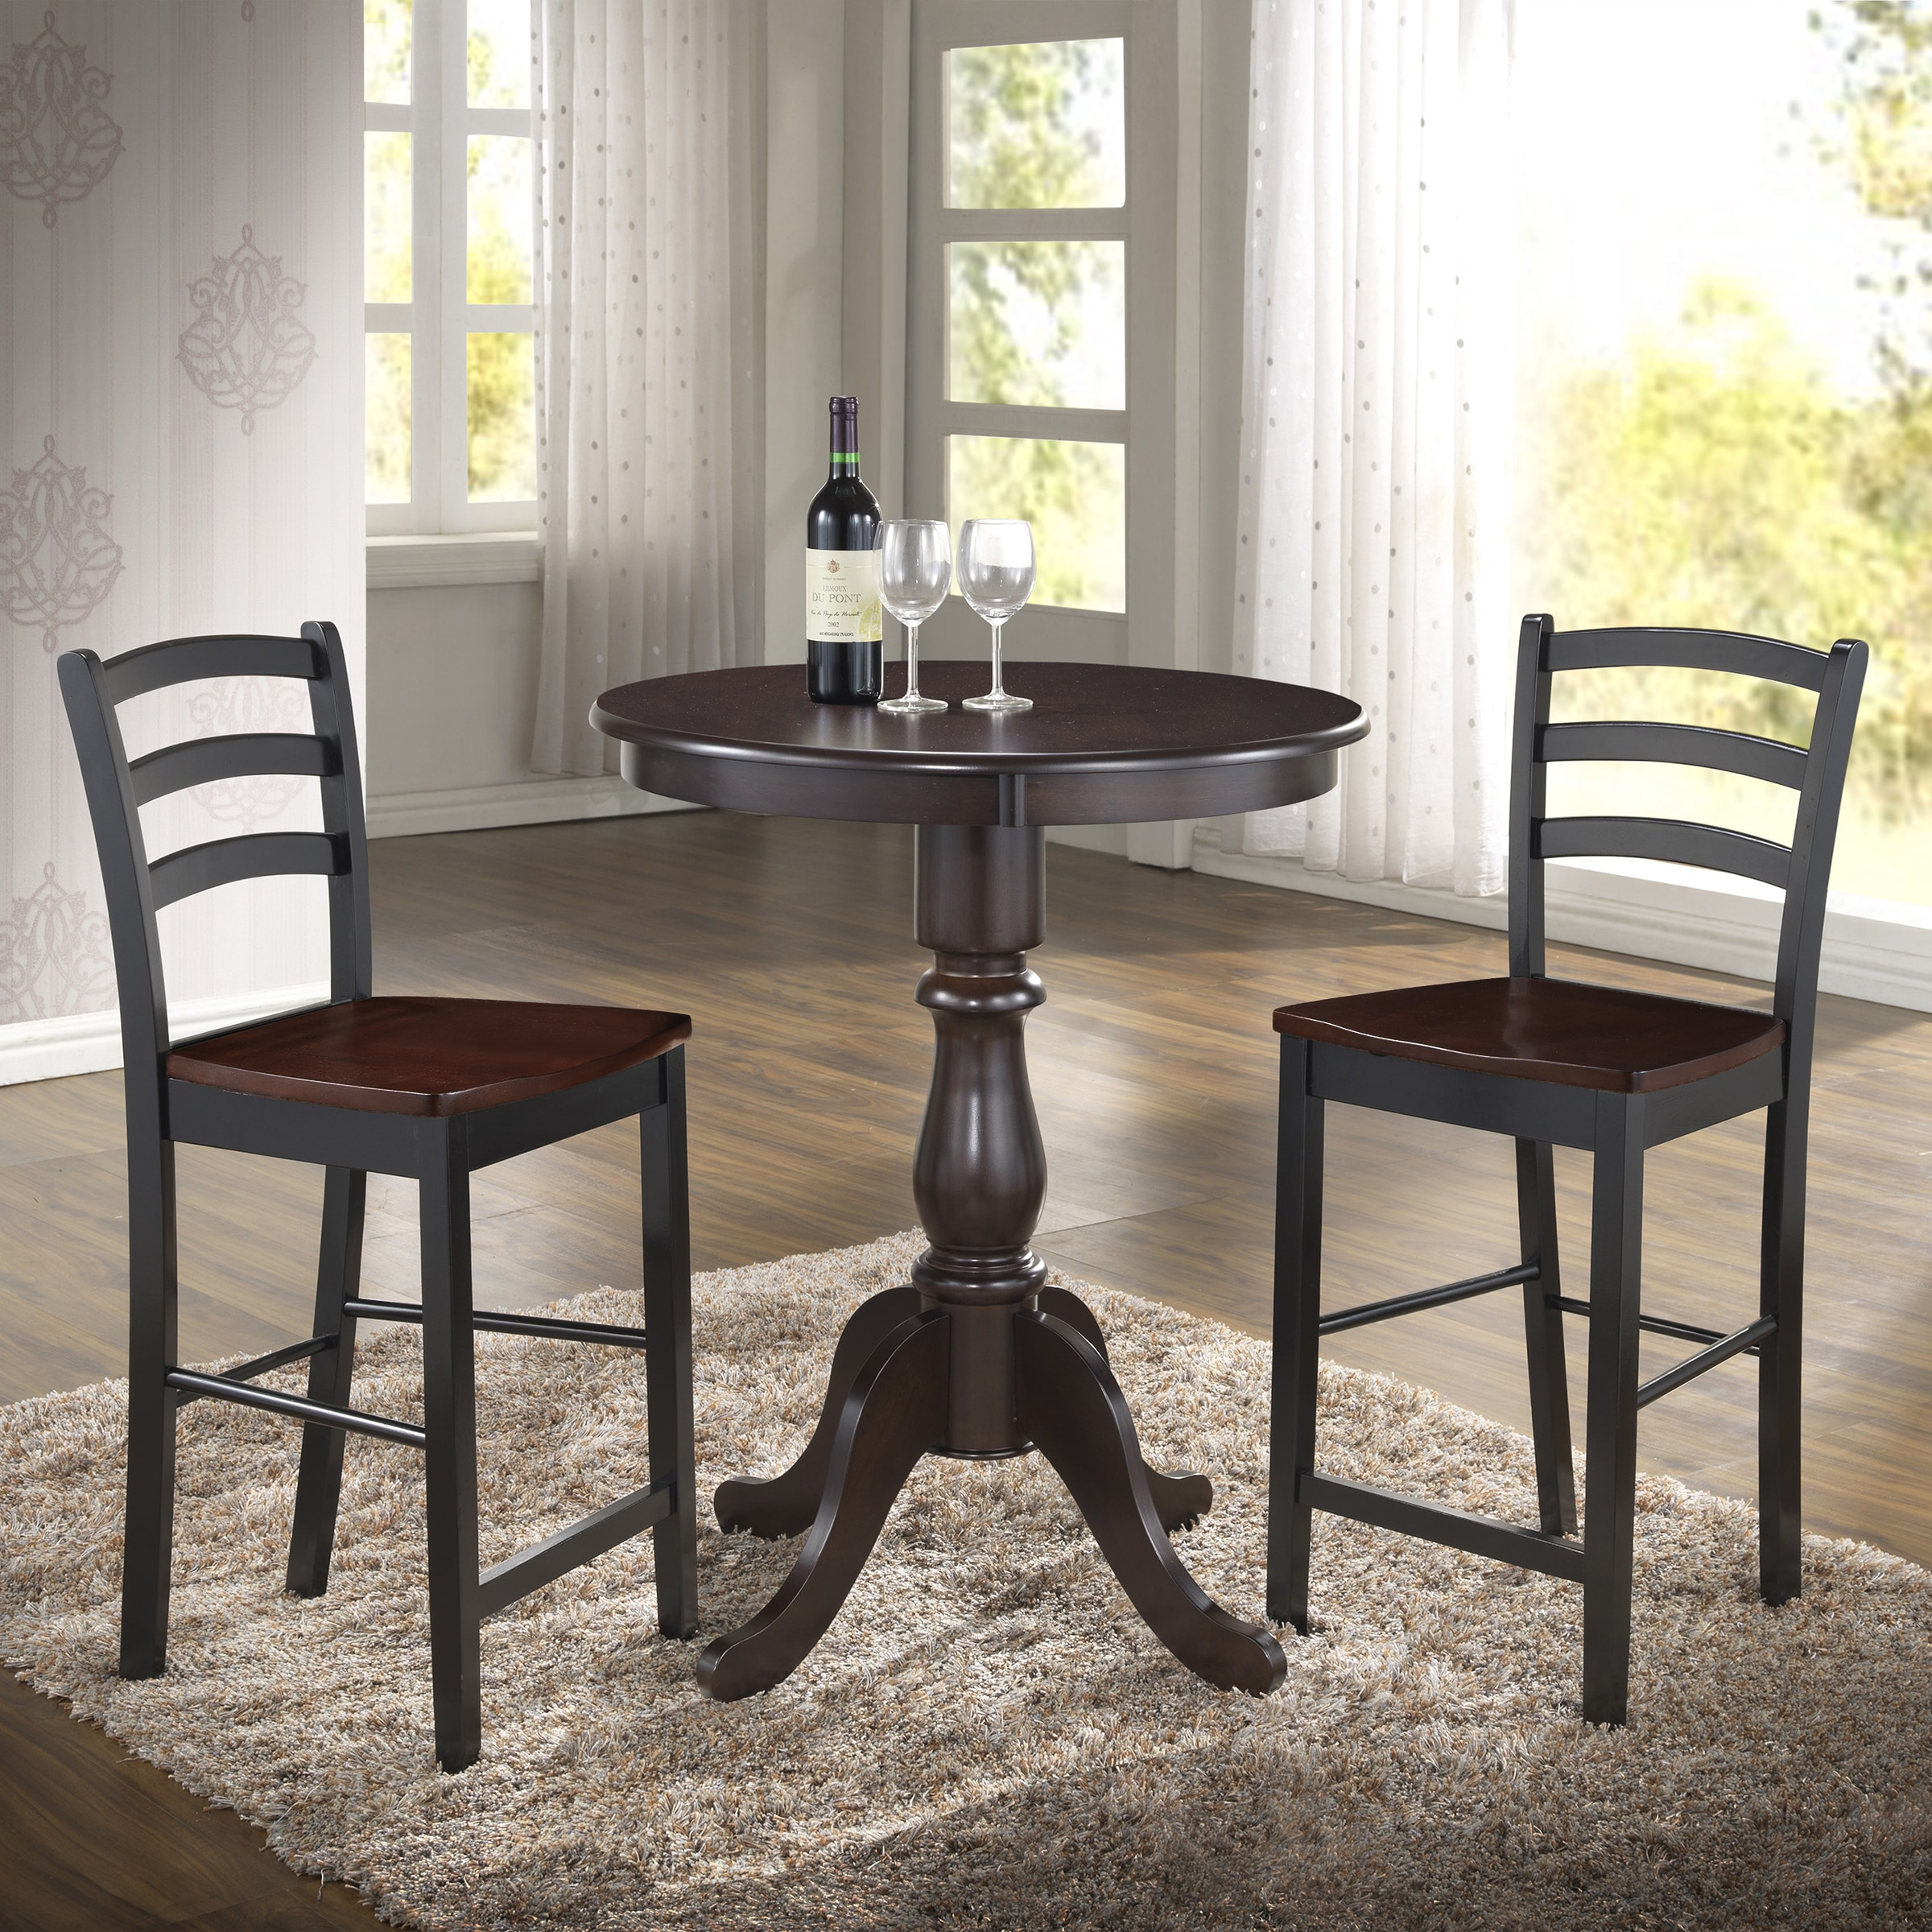 inch pedestal round table top furniture hooker iteminformation room brn auberose dining